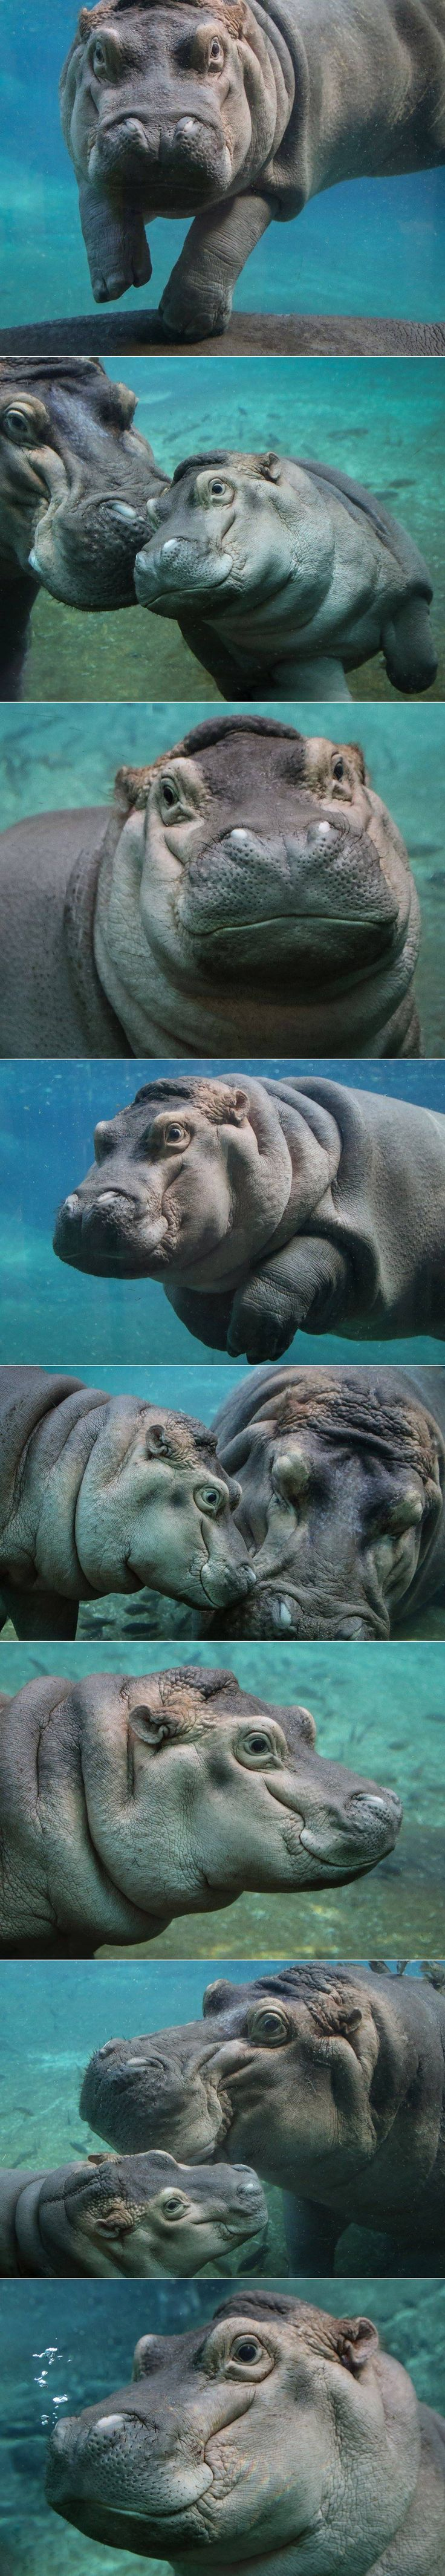 49 best aquatic animal designs images on pinterest fish pisces happy hippos at the san diego zoo 3 photos by penny hyde coupon code fandeluxe Images